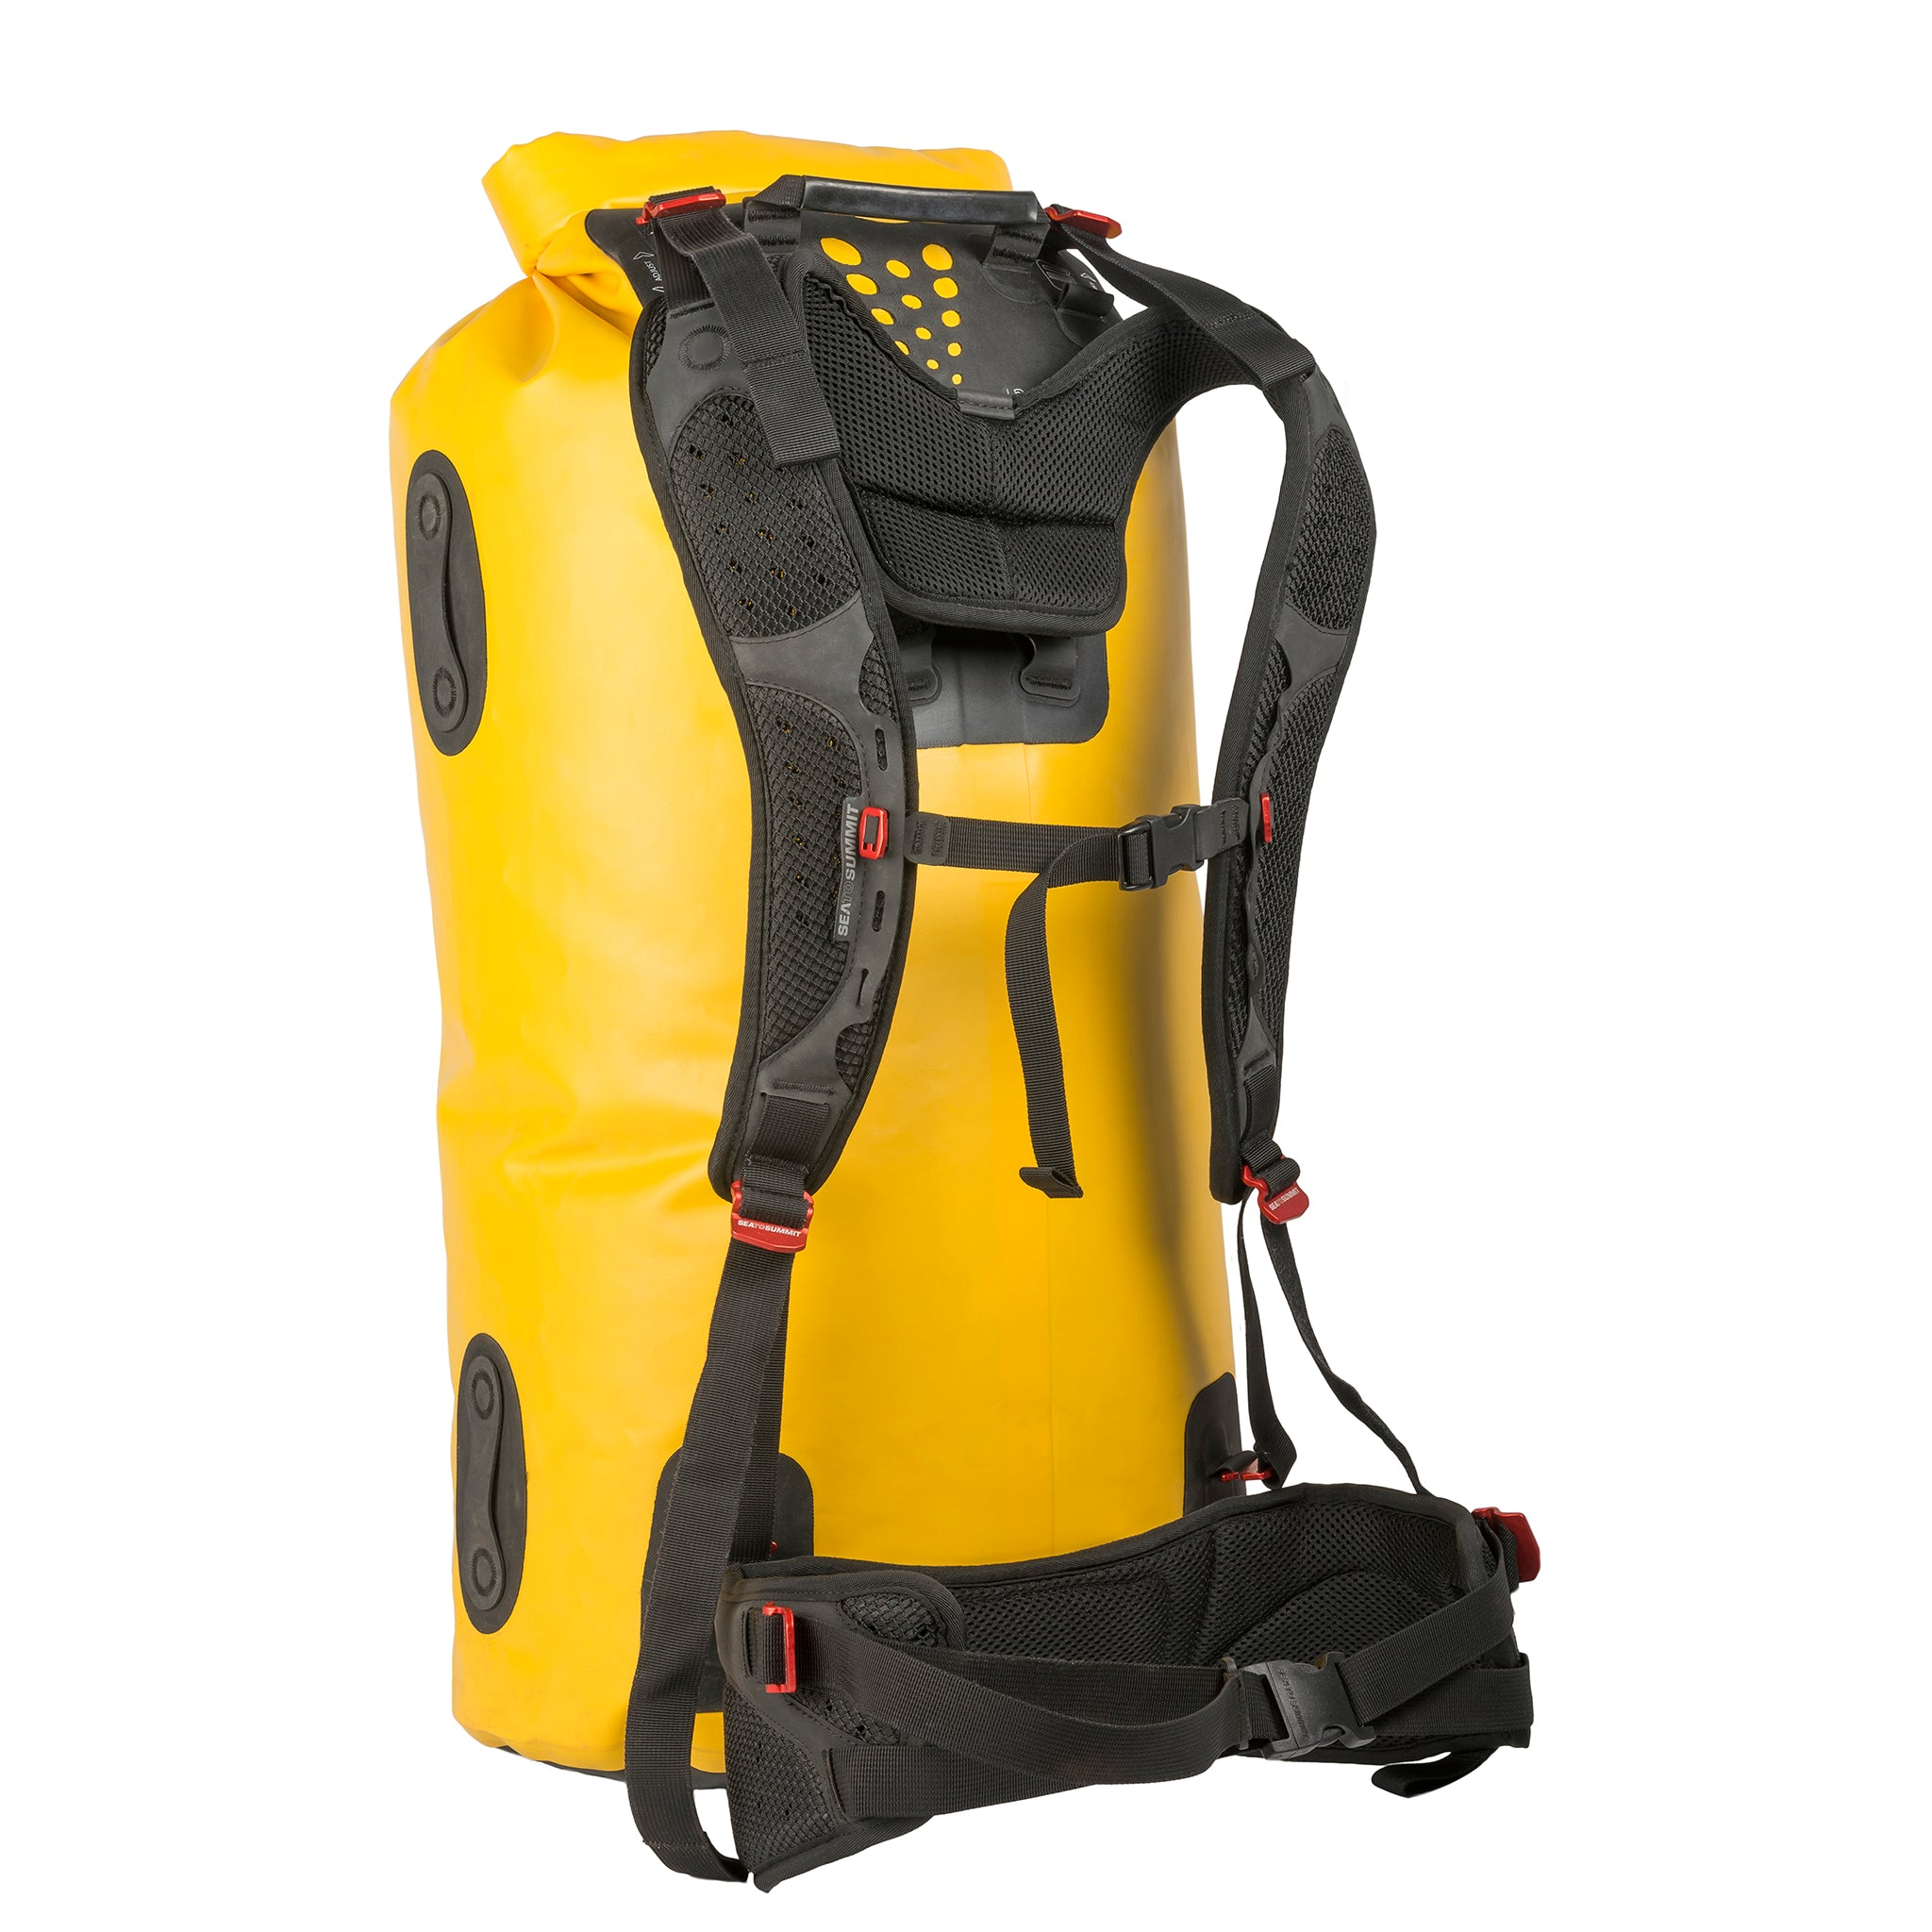 Hydraulic Dry Pack bag _120 liter _ yellow